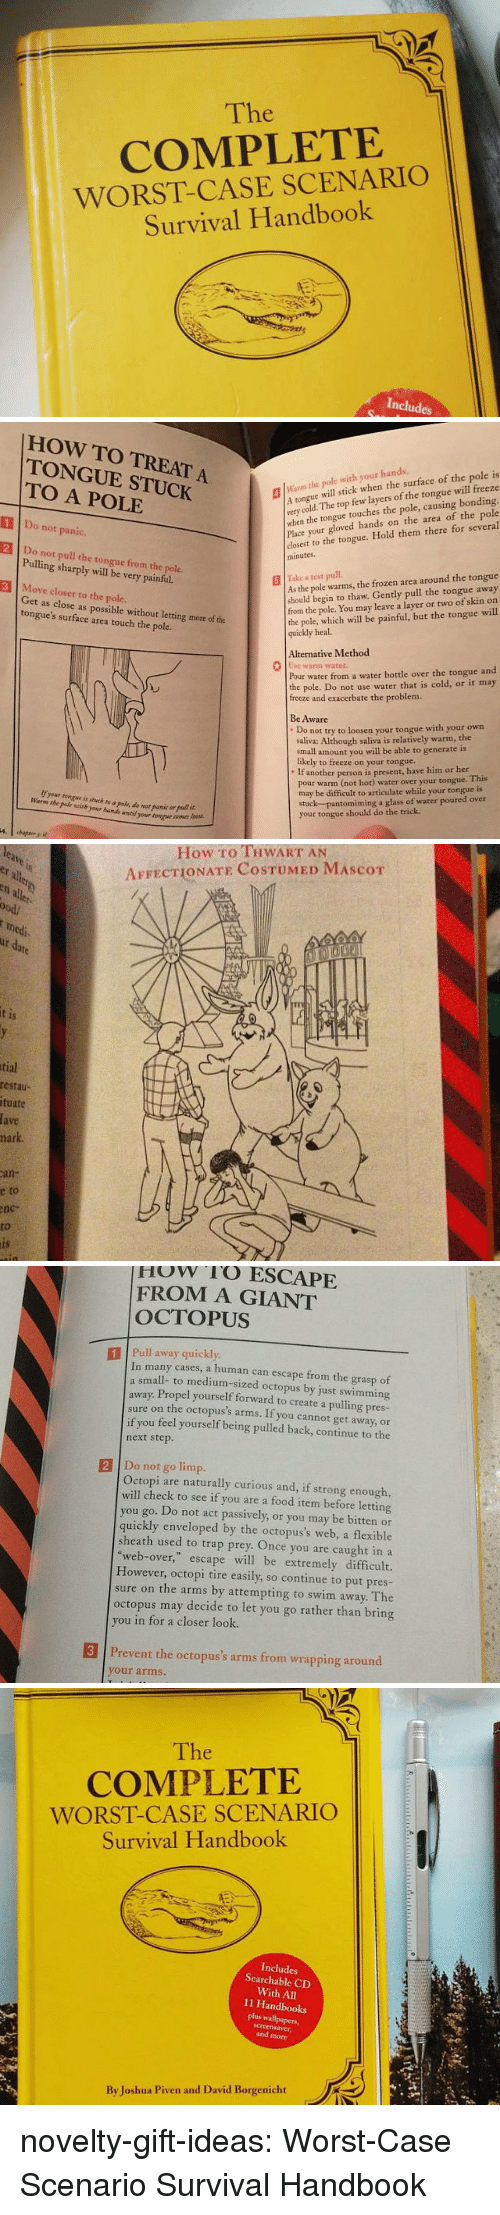 Food, Frozen, and Trap: The  COMPLETE  WORST-CASE SCENARIO  Survival Handbook  Includes   HOW TO TREAT A  TONGUE STUCK  TO A POLE  lWarm the pole with your hands.  Atongue will stick when the surface of the pole is  very  when the tongue touches the pole, causing bonding.  Place your gloved hands on the area of the pole  closest to the tongue. Hold them there for several  minutes  cold. The top few layers of the tongue will freeze  1 Do not panic.  2 Do not pull the tongue from the pole  3 Move closer to the pole.  Pulling sharply will be very painful.  As the pole warms, the frozen area around the tongue  should begin to thaw. Gently pull the tongue away  from the pole. You may leave a layer or two of skin on  the pole, which will be painful, but the tongue will  quickly heal.    İlke z test pull.  Get as close as possible without letting more of the  tongue's surface area touch the pole.  Alternative Method  0  se warm water  Pour water from a water bottle over the tongue and  the pole. Do not use water that is cold, or it may  freeze and exacerbate the problem.  Be Aware  Do not try to loosen your tongue with your own  saliva: Although saliva is relatively warm, the  small amount you will be able to generate is  likely to freeze on your tongue..  If another person is present, have him or her  pour warm (not hot) water over your tongue. This  may be difficult to articulate while your tongue is  stuck-pantomiming a glass of water poured over  your tongue should do the trick  Warm the pole wih yr ui wti  your ton   How To THWART AN  AFFECTIONATE COSTUMED MAScoT  er  all  ood/  medi  1S  tial  restau  tuate  fave  hark  an-  e  to  nc-  to   How rO ESCAPE  FROM A GIANT  OCTOPUS  1 Pull away quickly  In many cases, a human can escape from the grasp of  small- to medium-sized octopus by just swimming  away. Propel yourself forward to create a pulling pres-  sure on the octopus's arms. If you cannot get away, or  if you feel yourself being pulled back, continue to the  